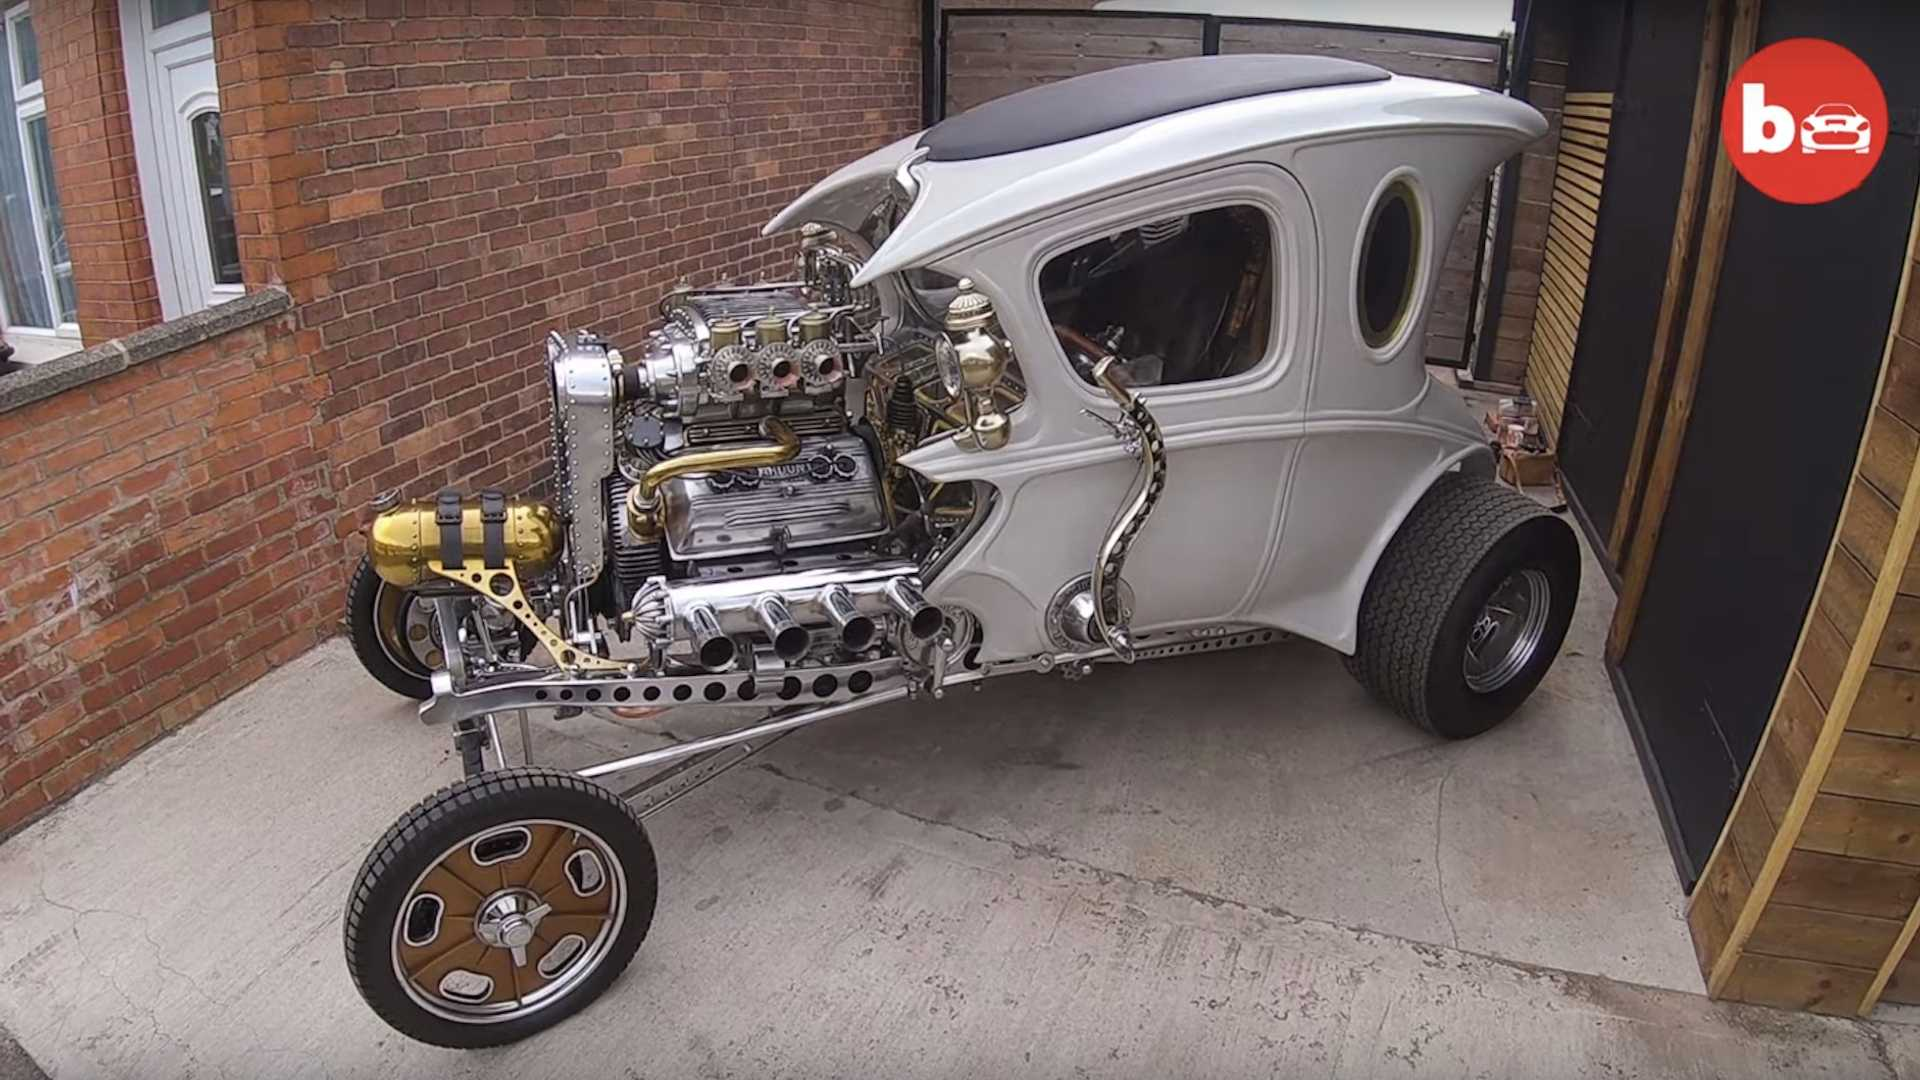 Steampunk Hot Rod Built From The Ground Up Is Bonkers